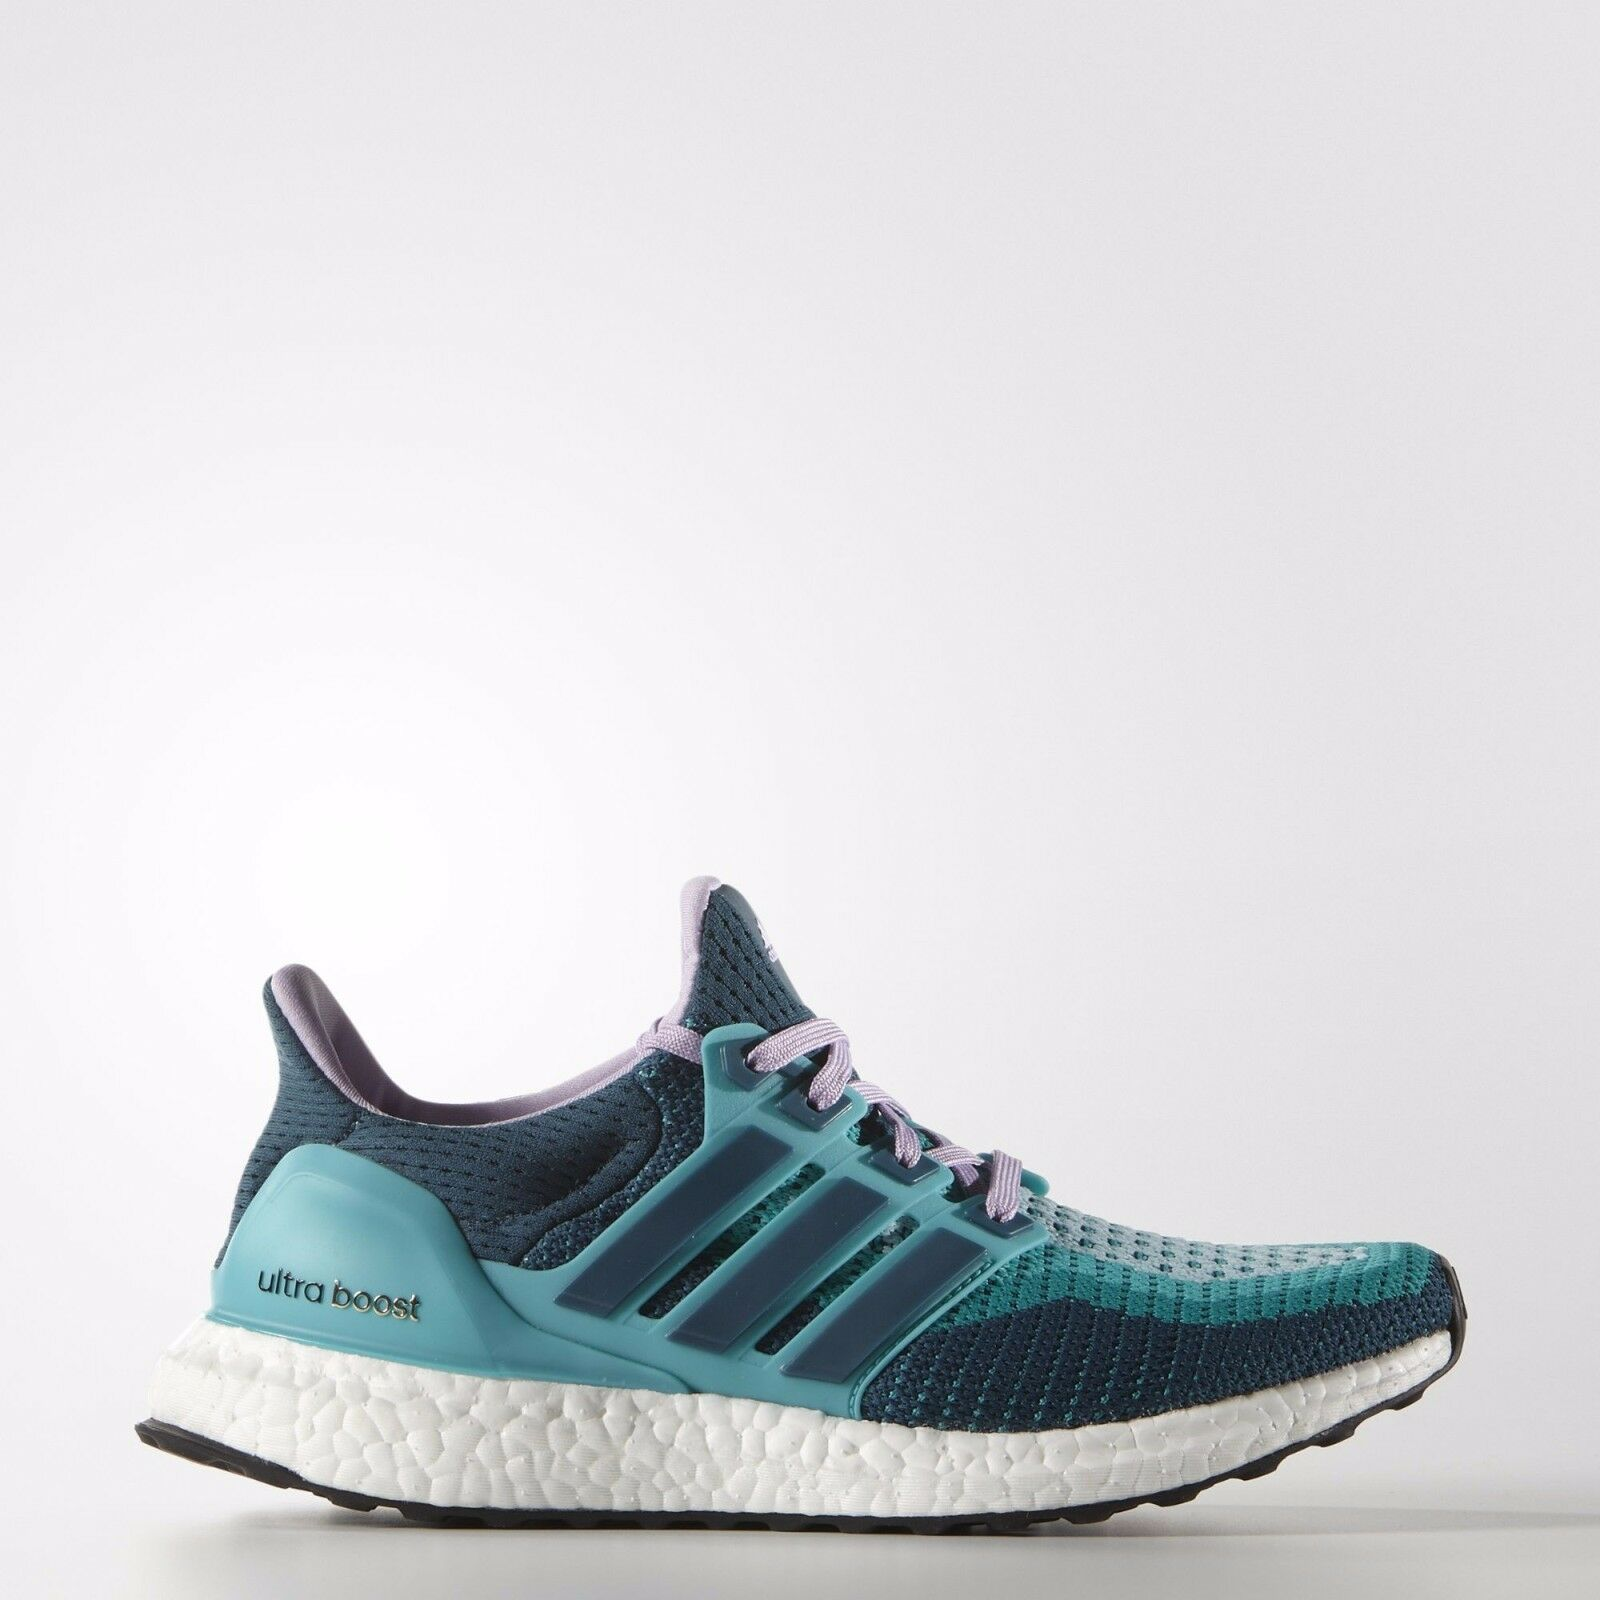 Adidas Ultra Boost  Chaussures  AF5140 femmes  Running Rare Limited Edition Yezzy Kanye